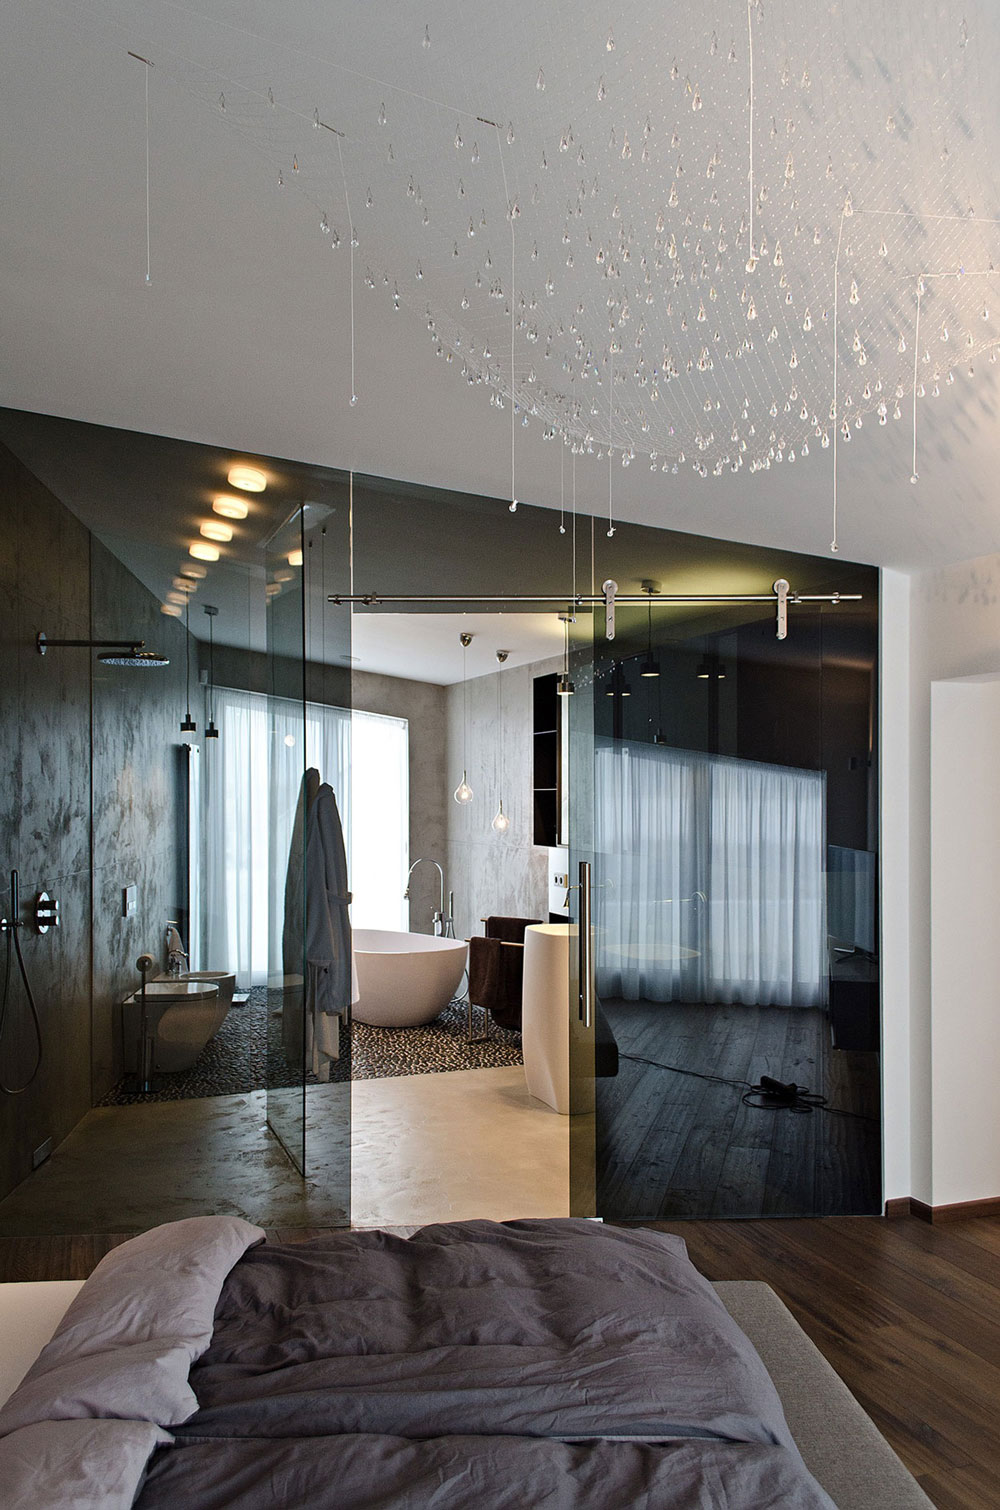 dark glass wall bathroom bedroom concrete interior